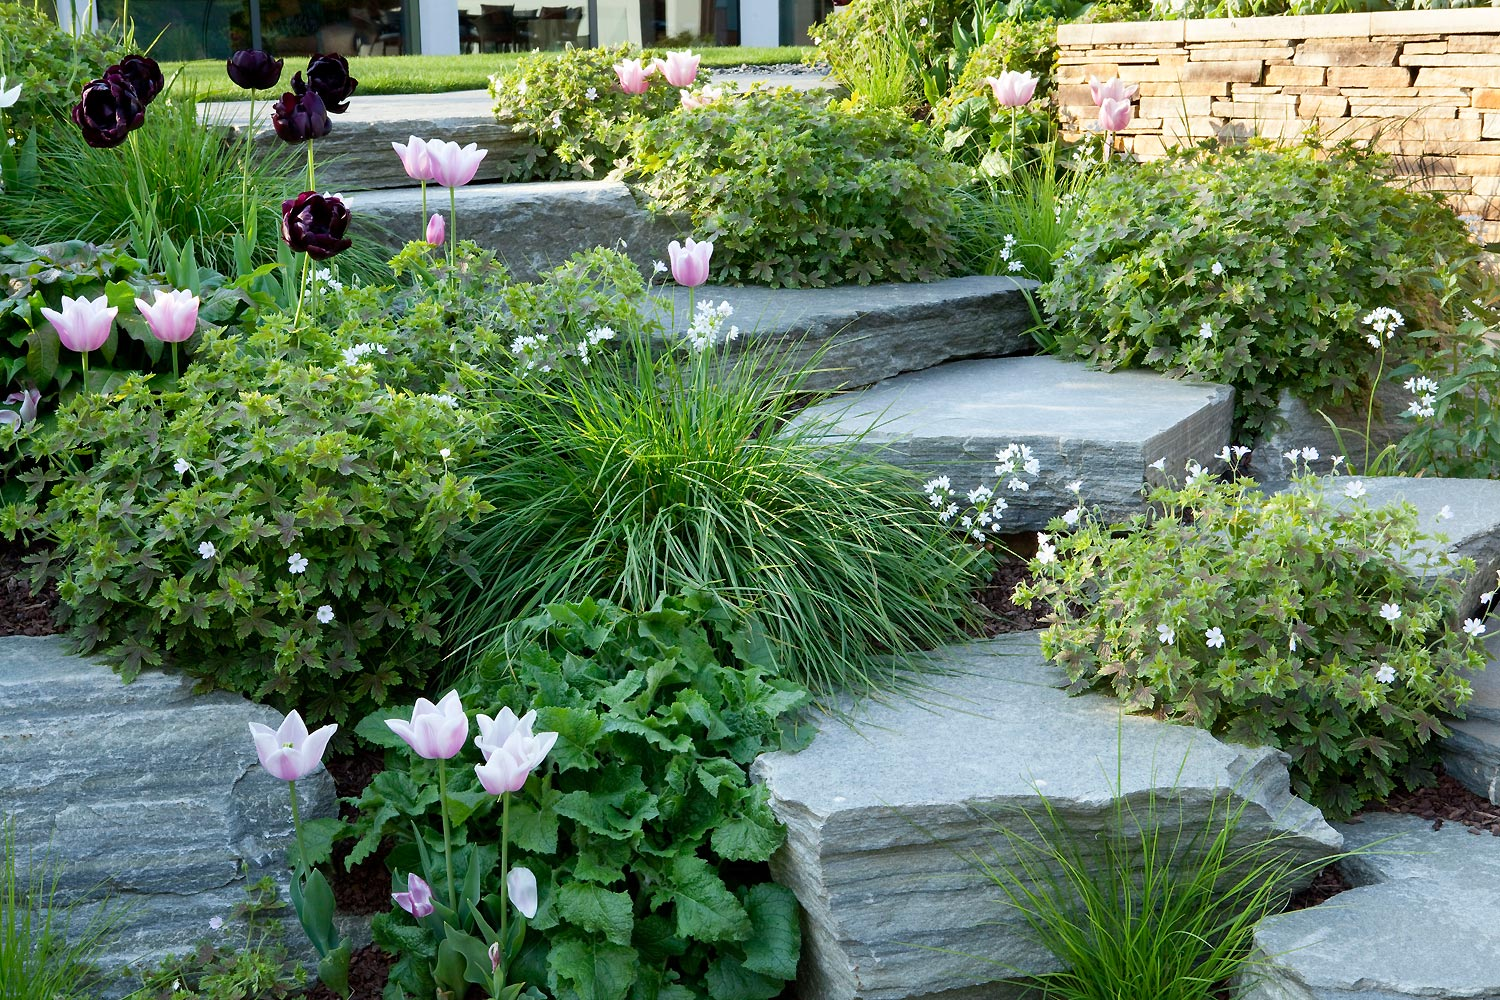 In love with beauty julie toll landscape garden design for Beautiful gardens landscaping